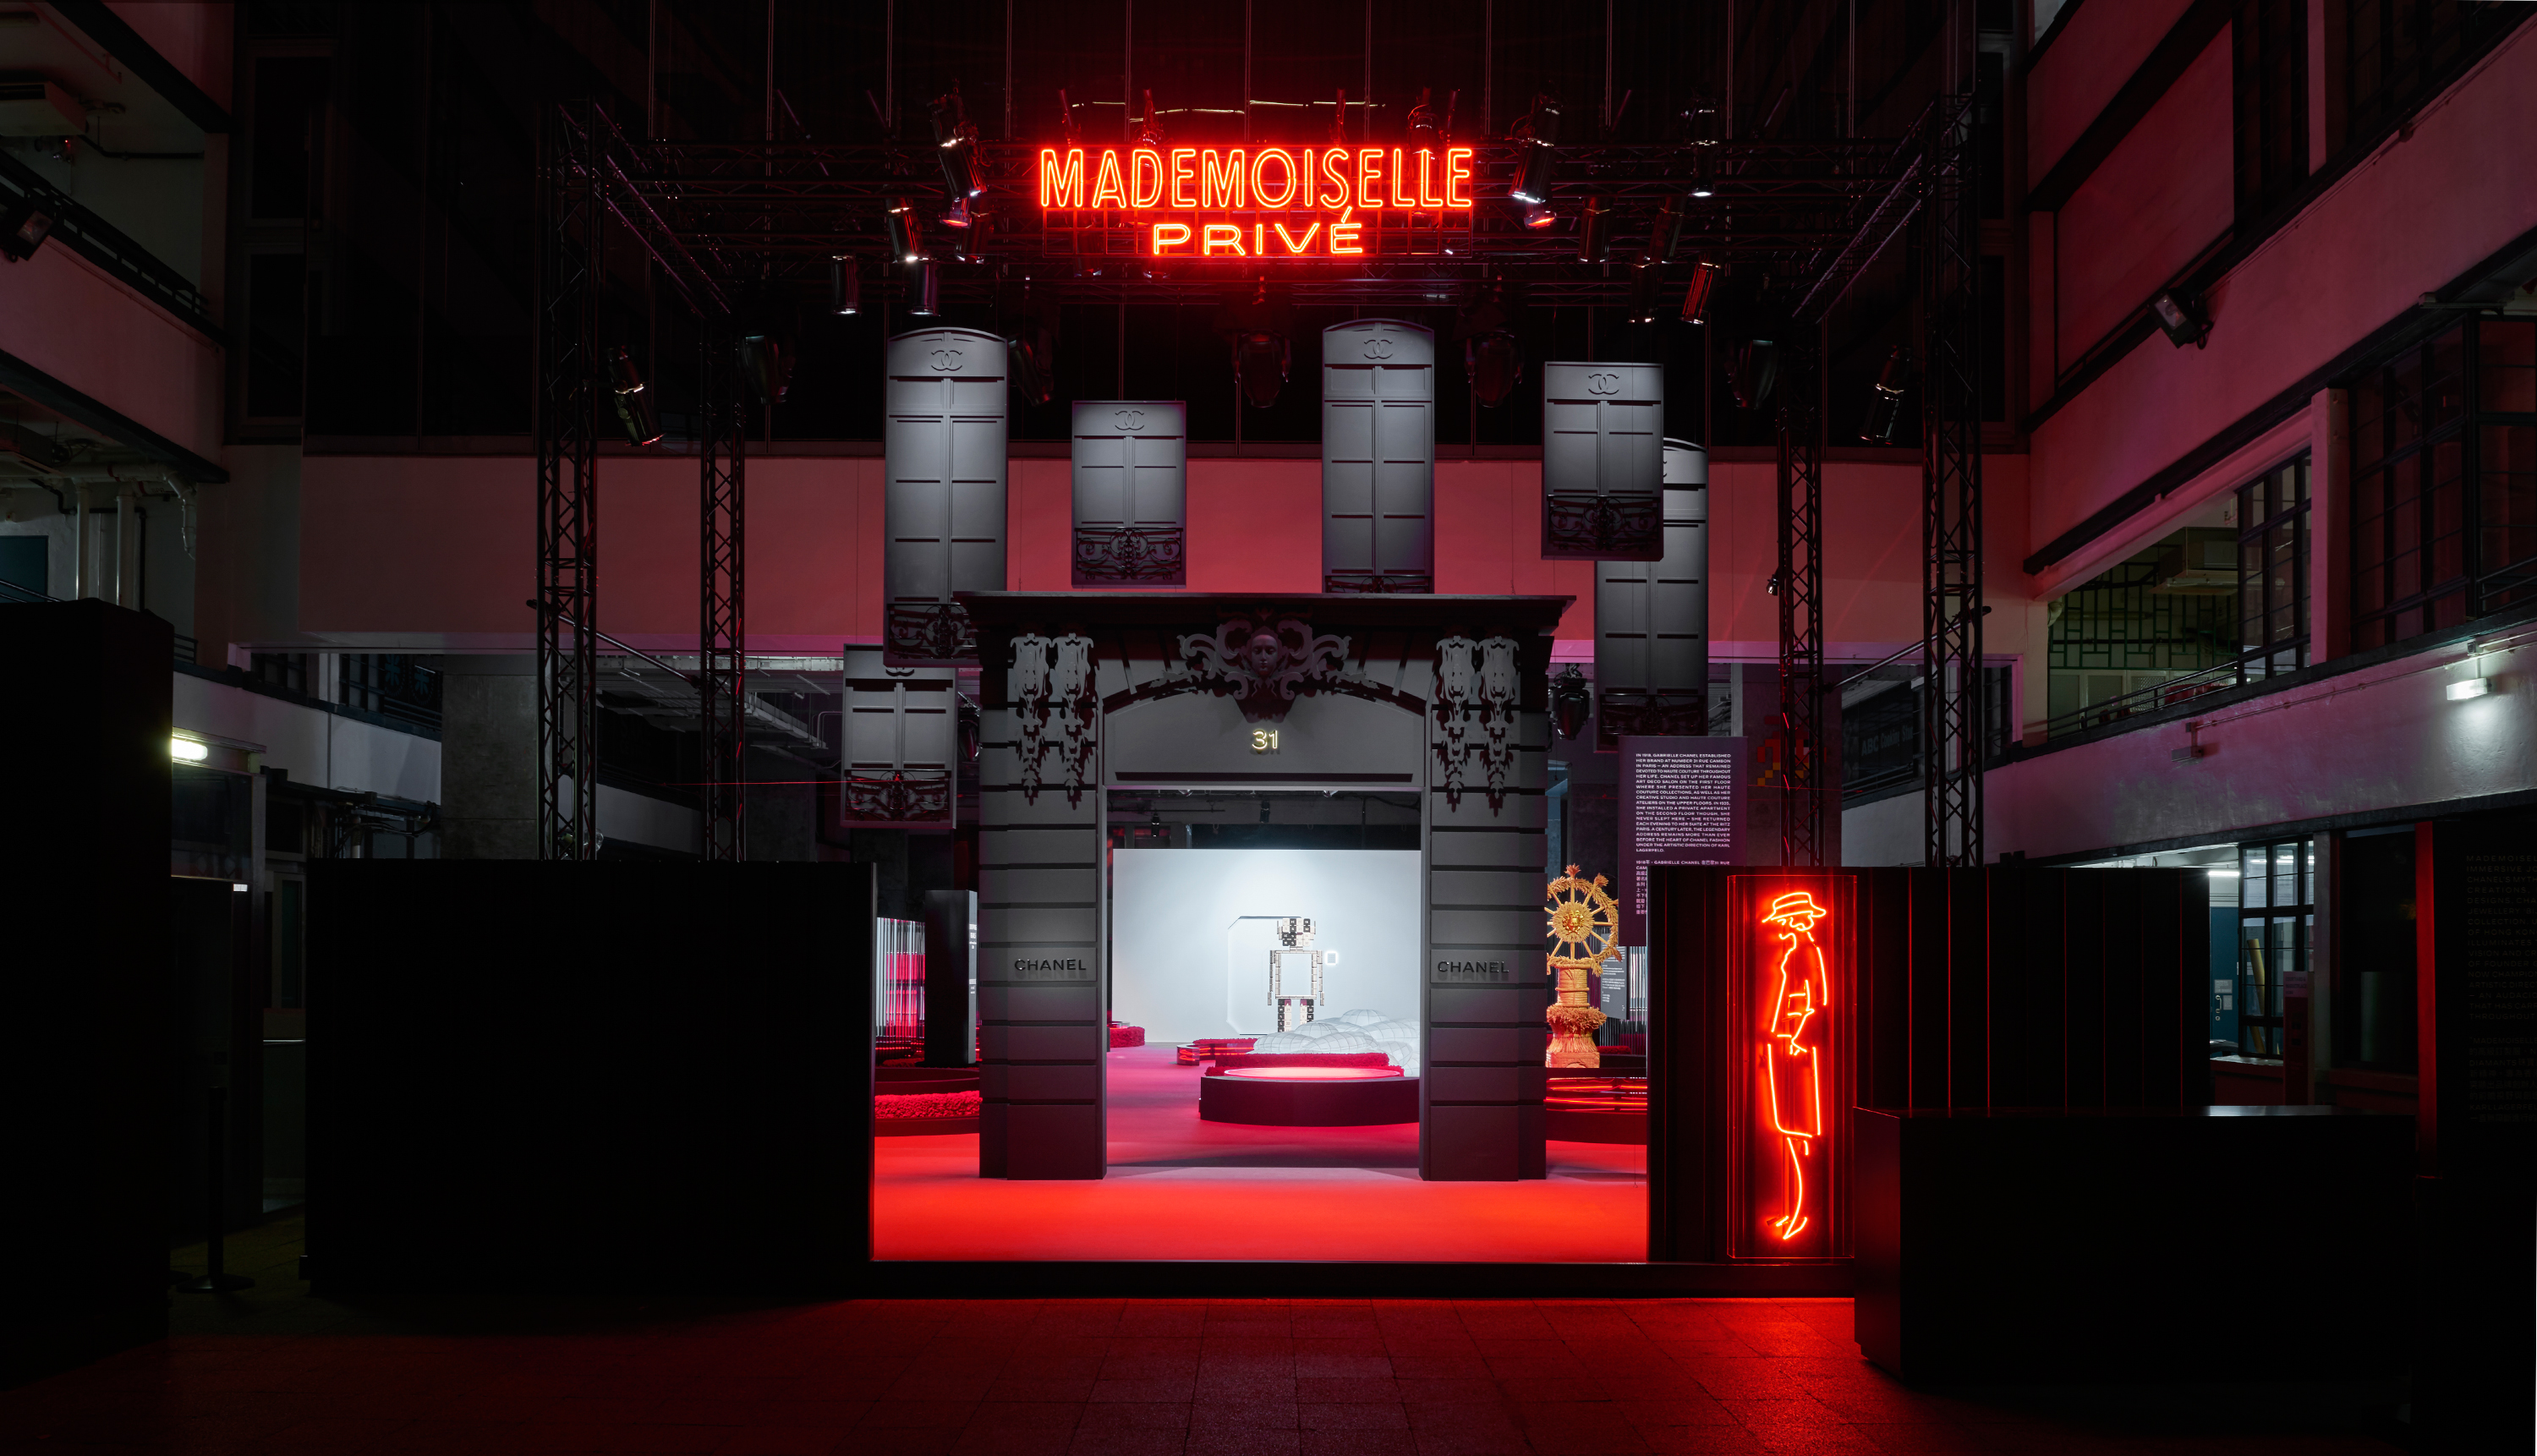 CHANEL Madmoiselle exhibition in Hong kong.